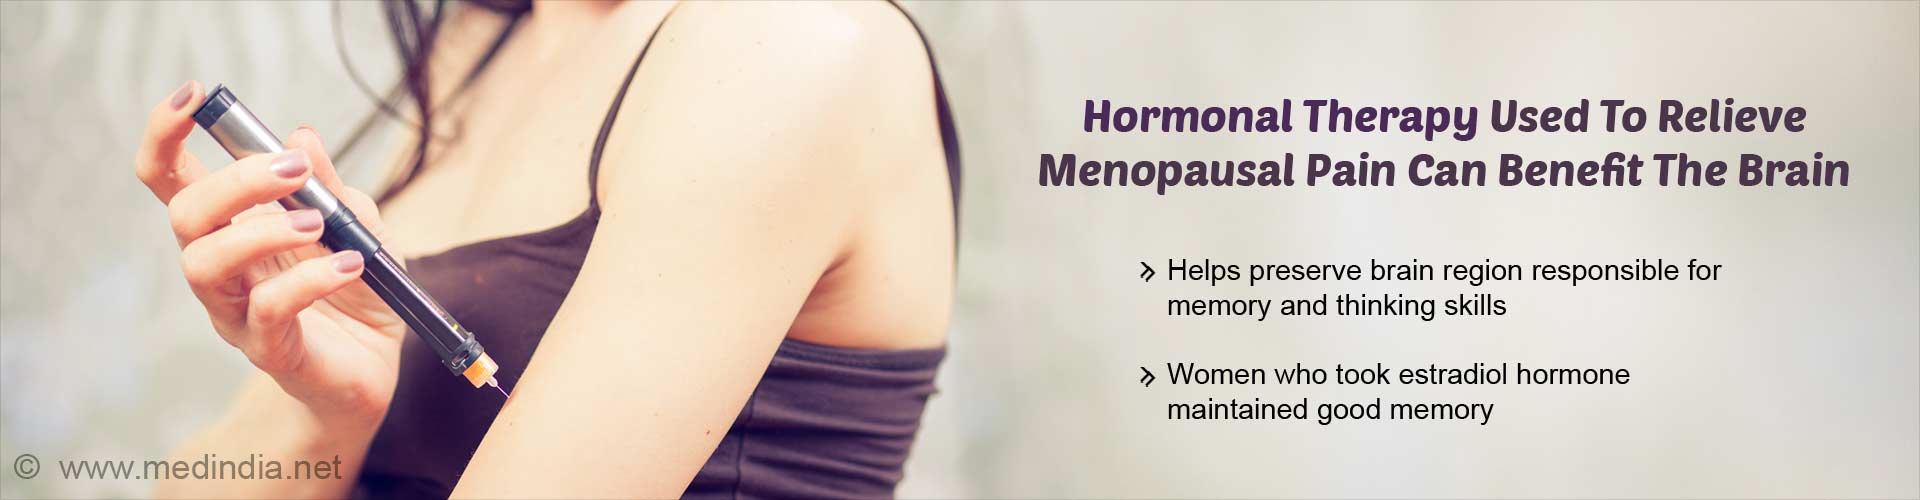 Pain Relieving Menopausal Hormonal Therapy May Benefit The Brain